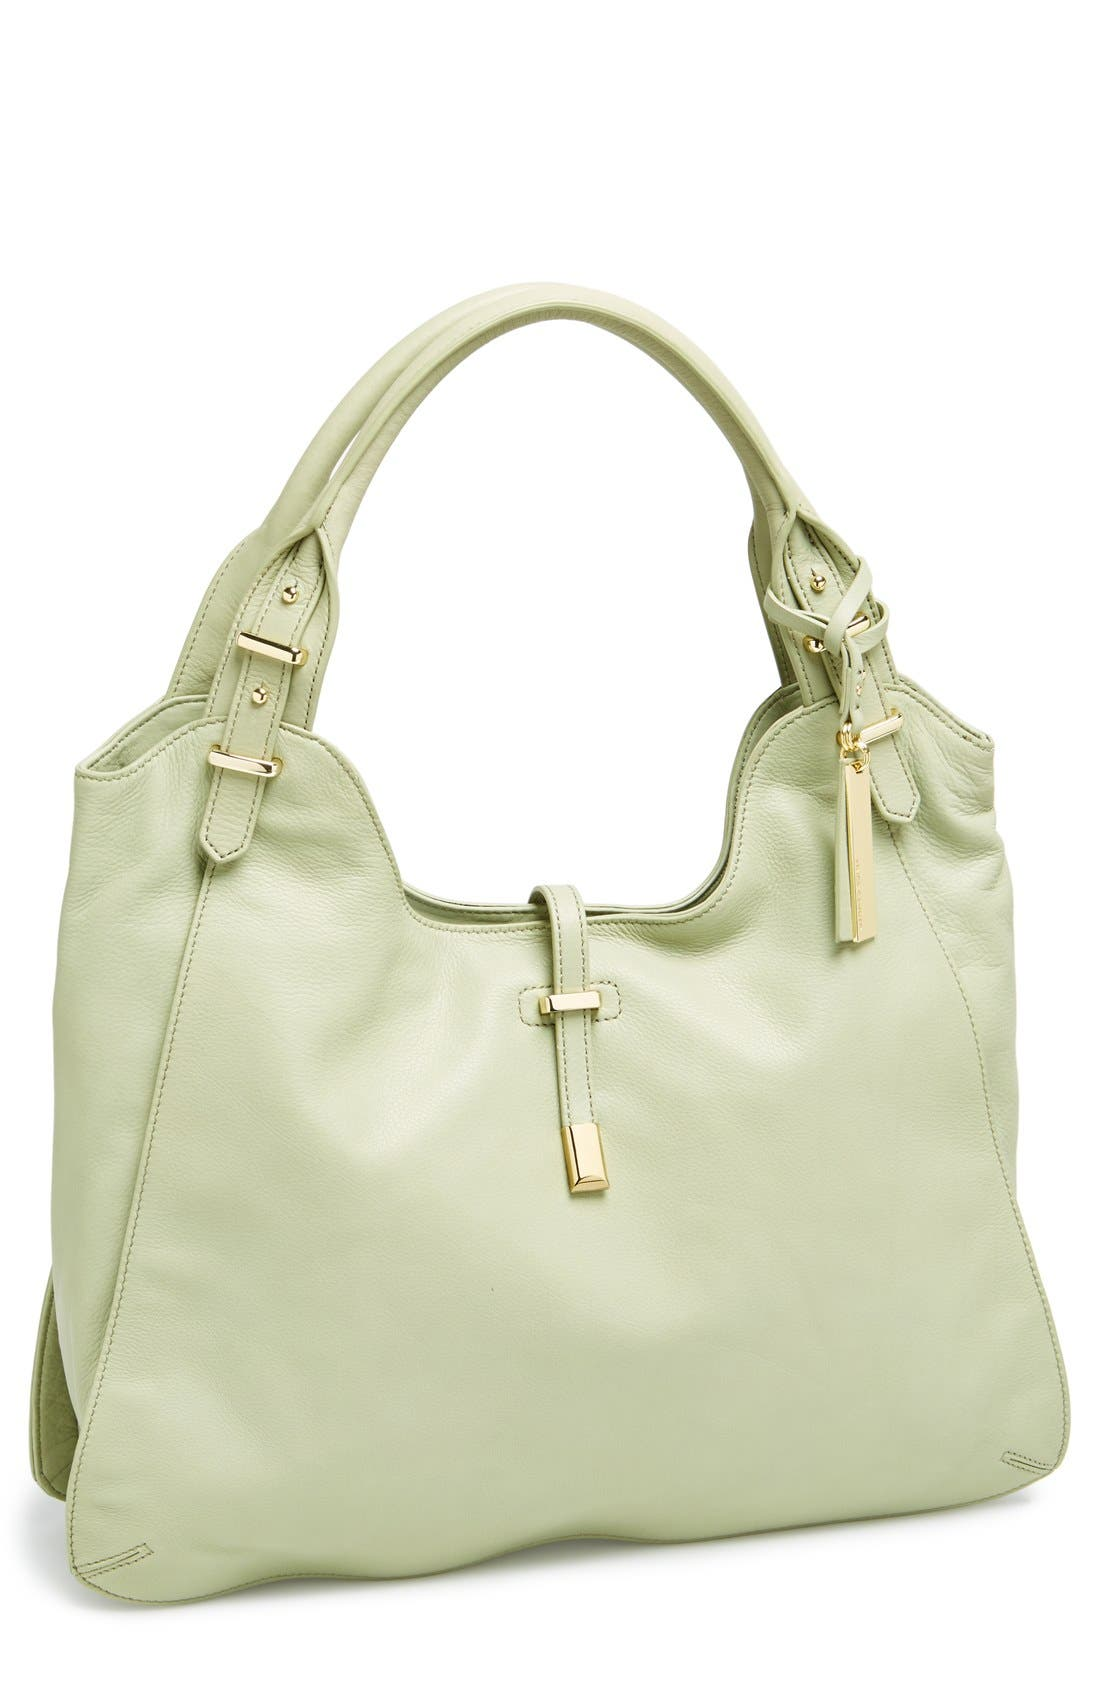 Main Image - Vince Camuto 'Molly' Leather Tote